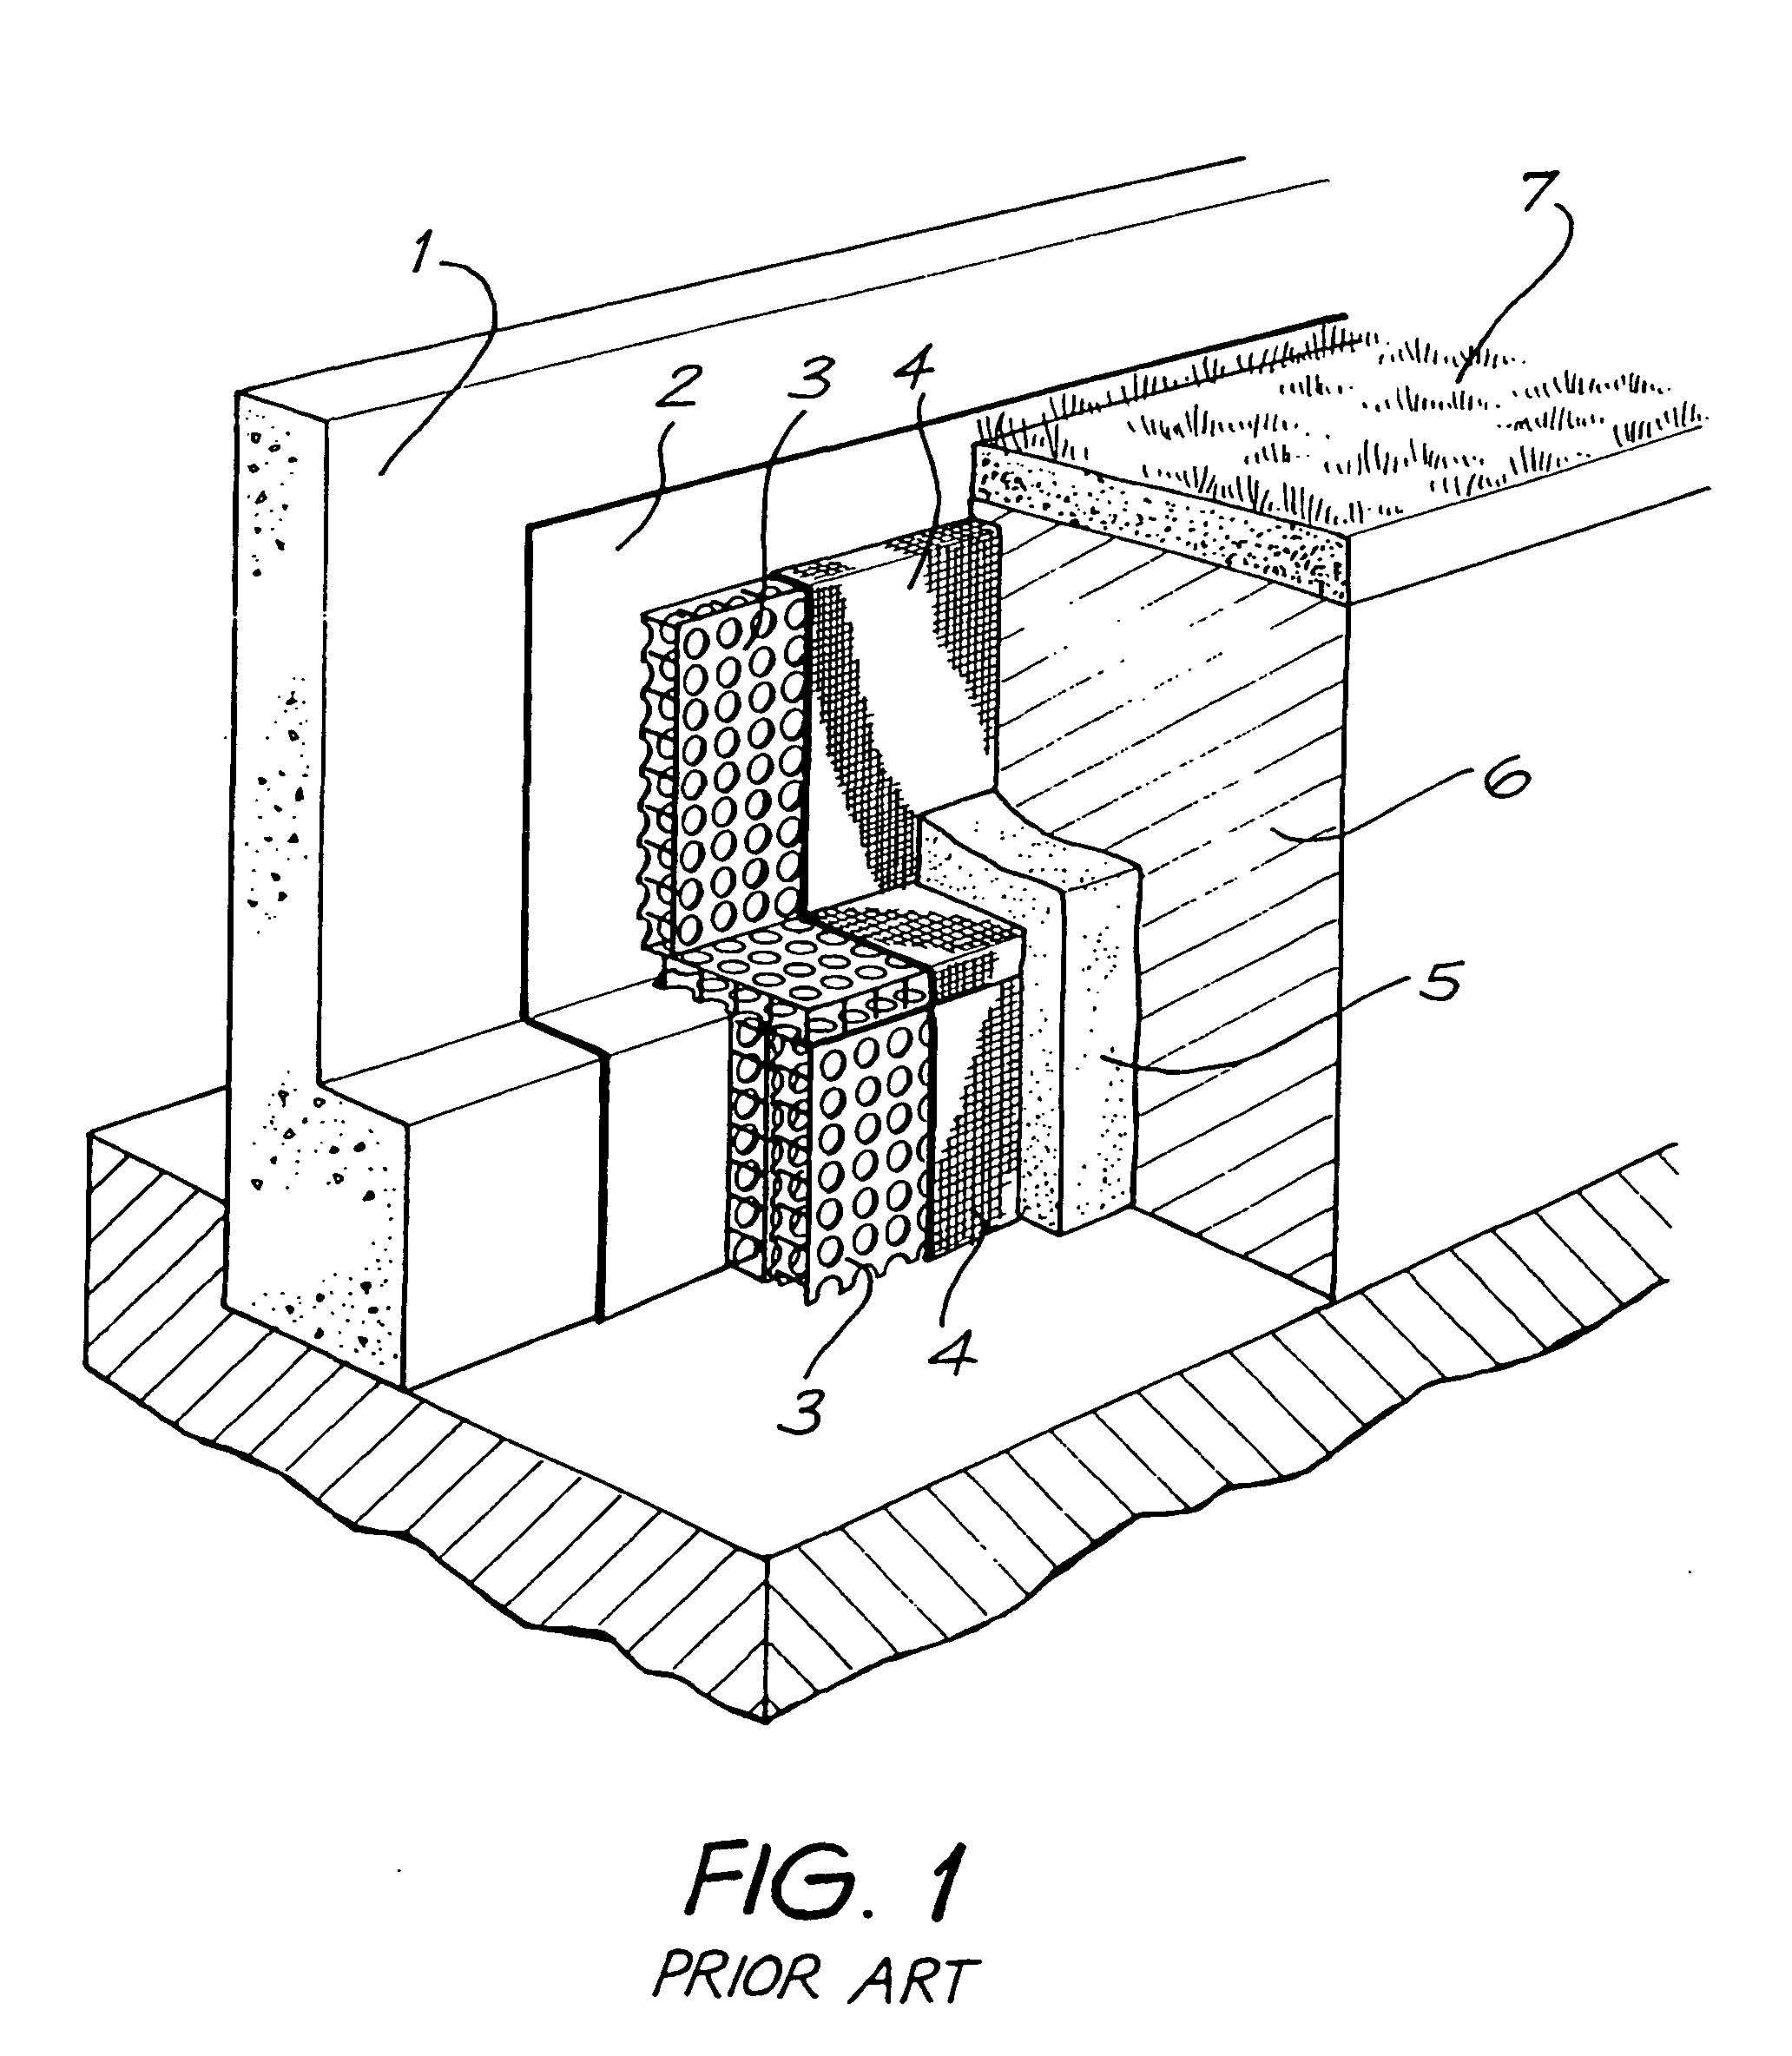 Subsoil Drainage System : Patent ep b structural modular interconnectable